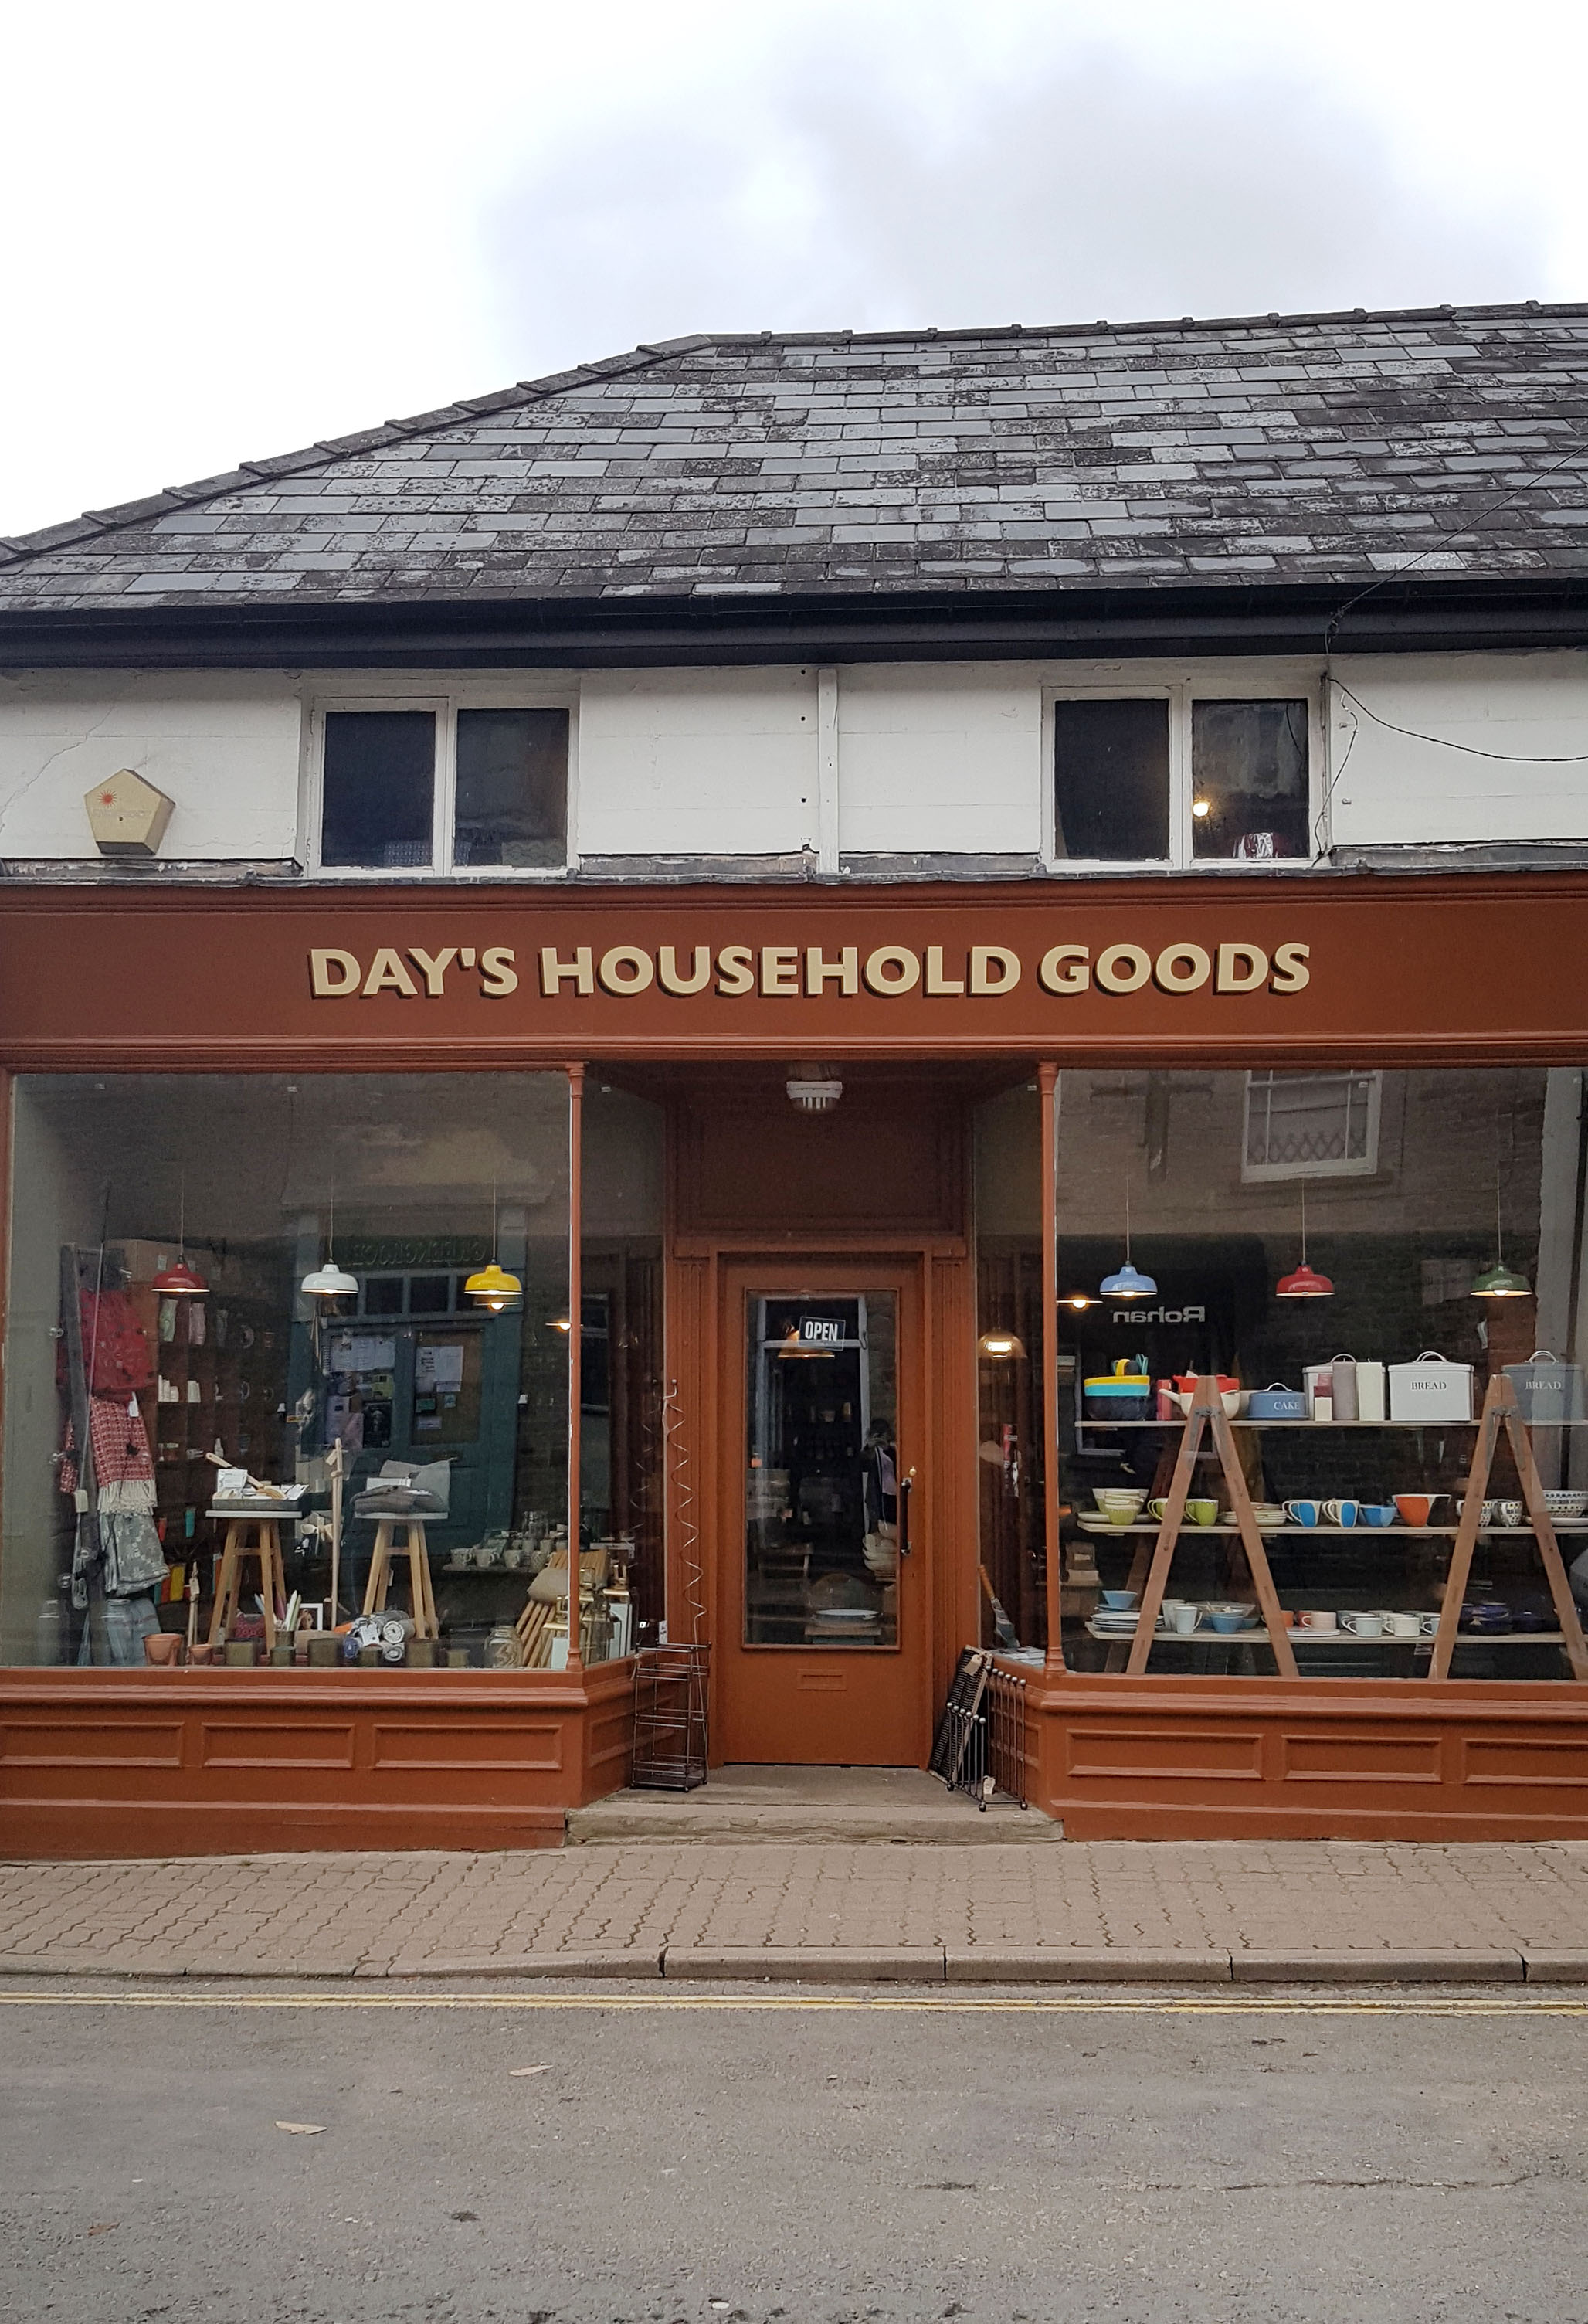 Days Household Goods, Hay on Wye